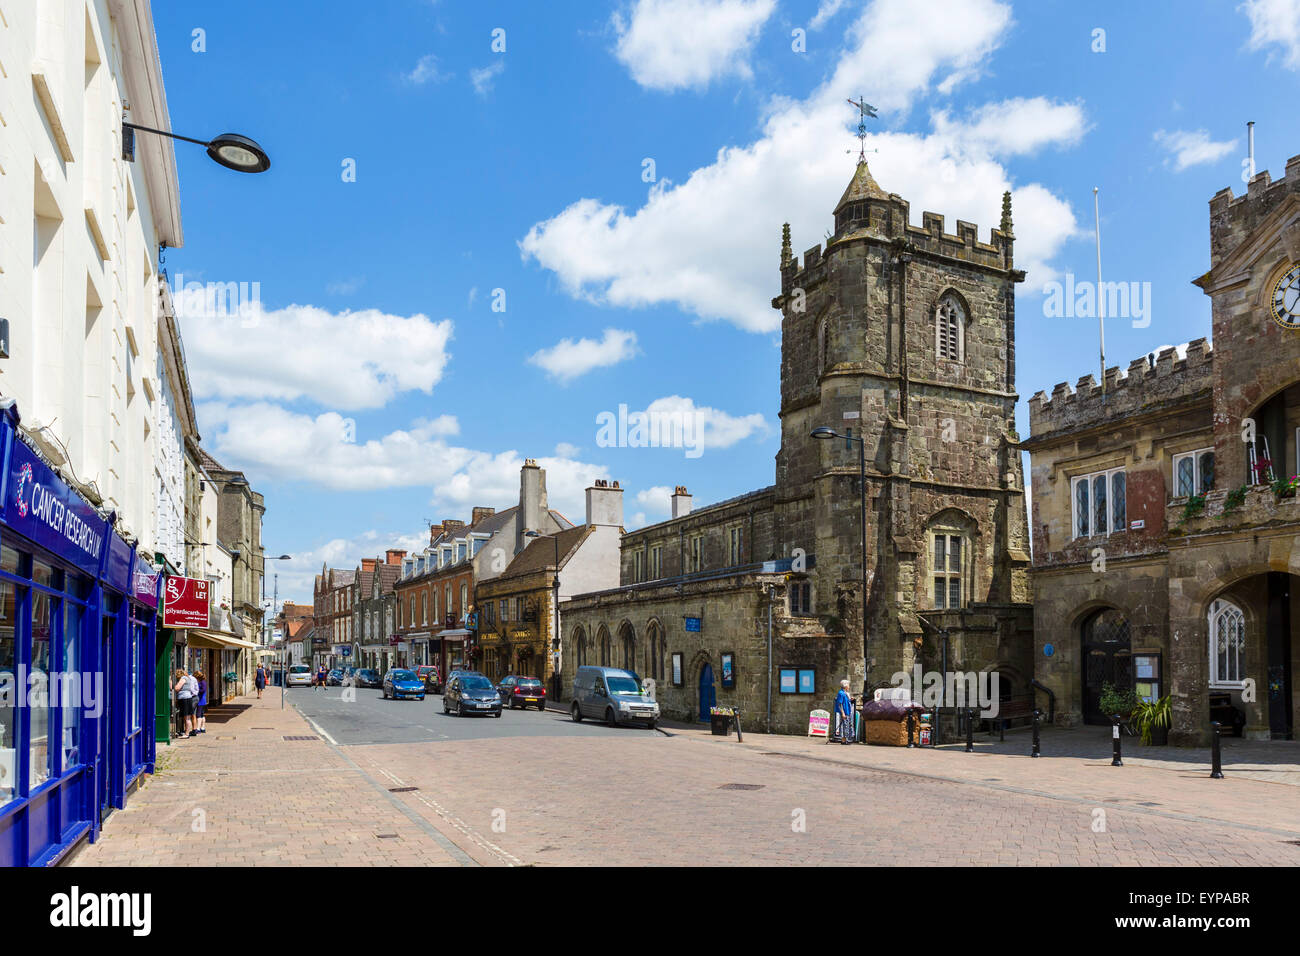 The High Street with Saint Peter's Church and the Town Hall to the right, Shaftesbury, Dorset, England, UK Stock Photo